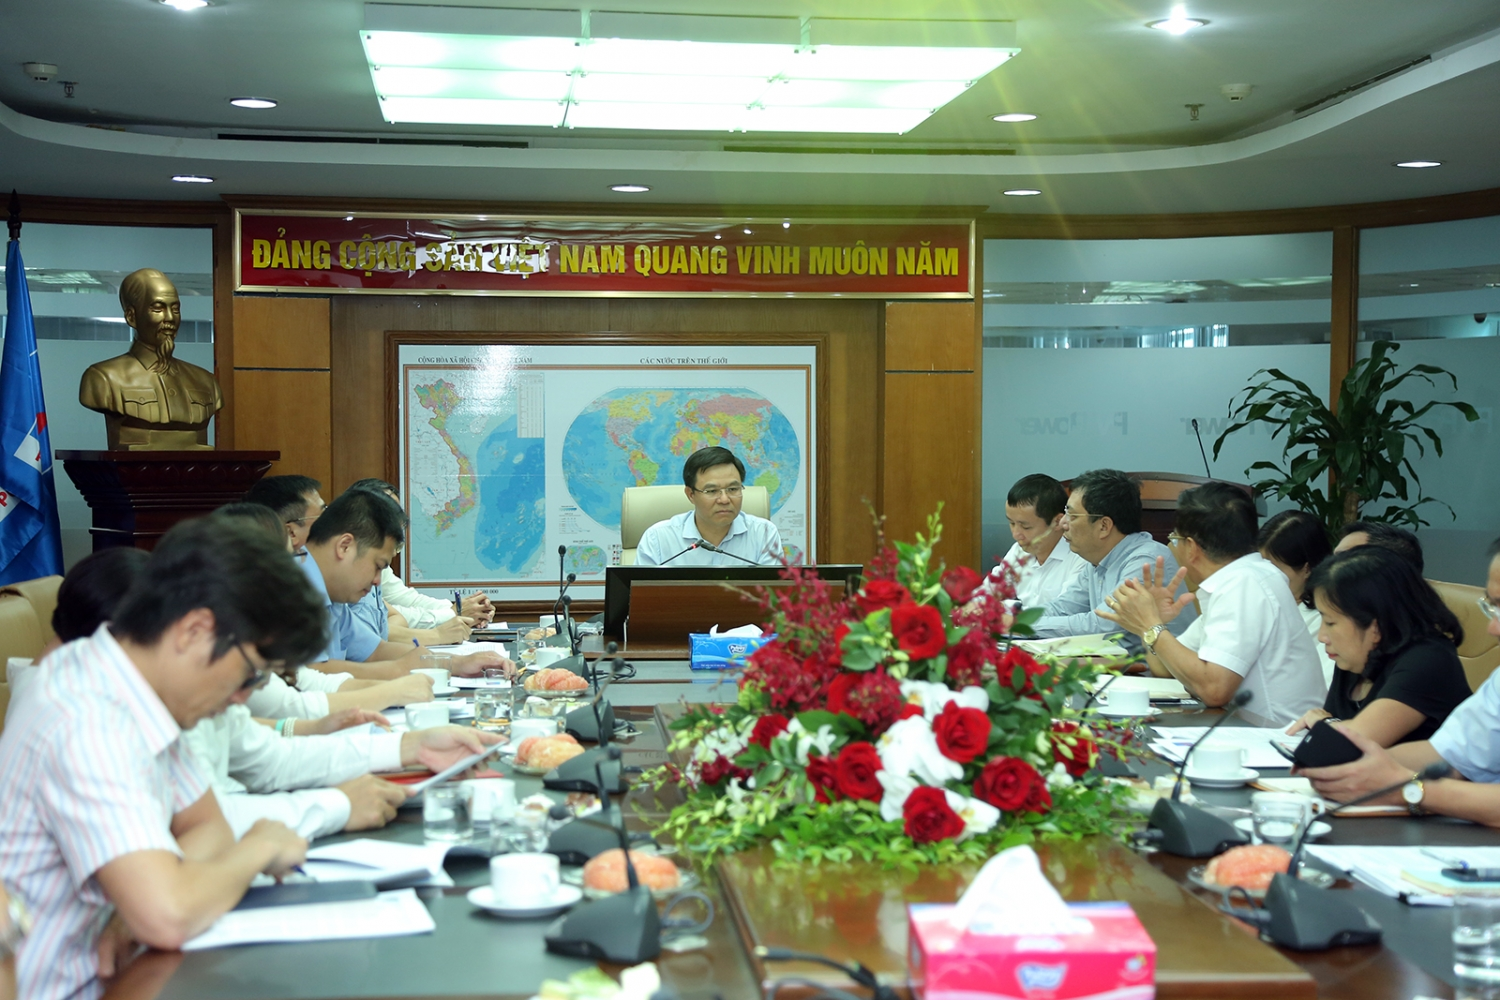 The General Director of PVN supports PV Power to invest in renewable energy